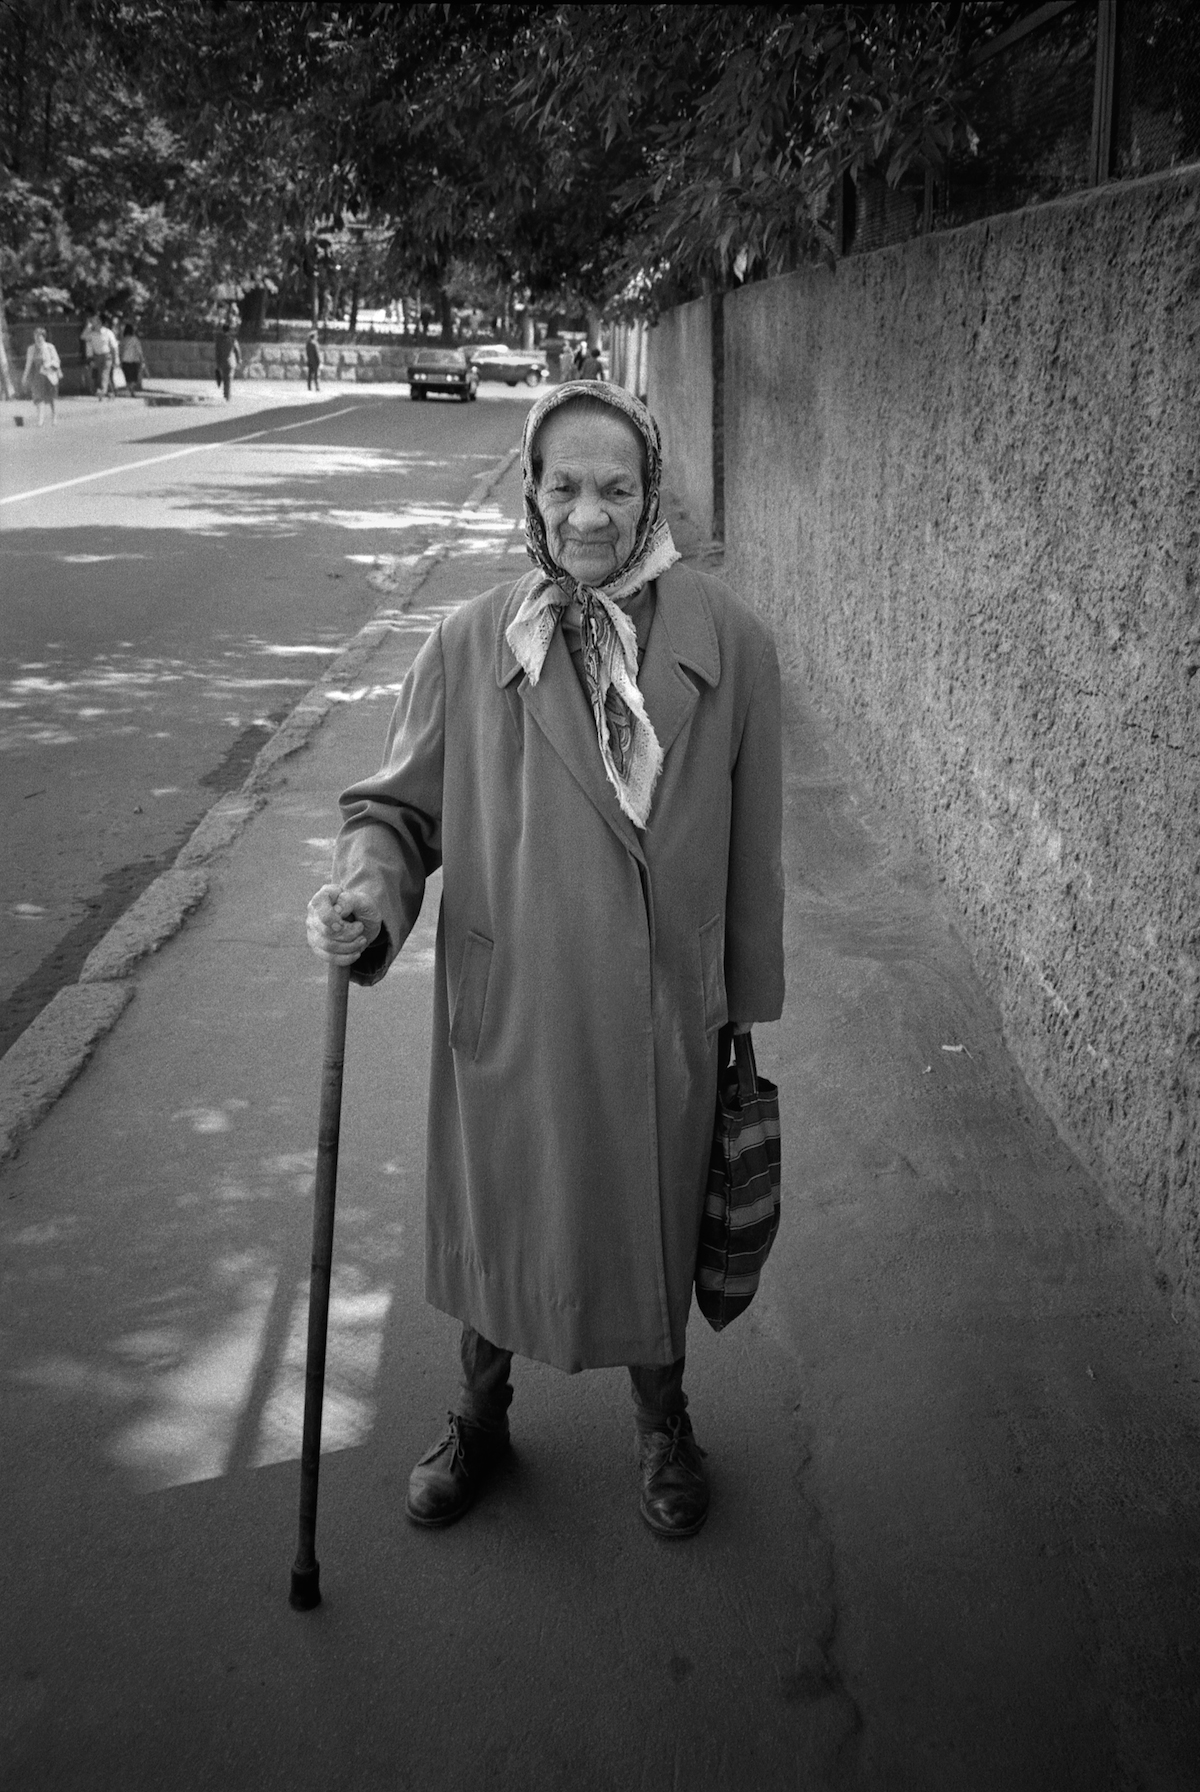 That's how old people looked like in USSR